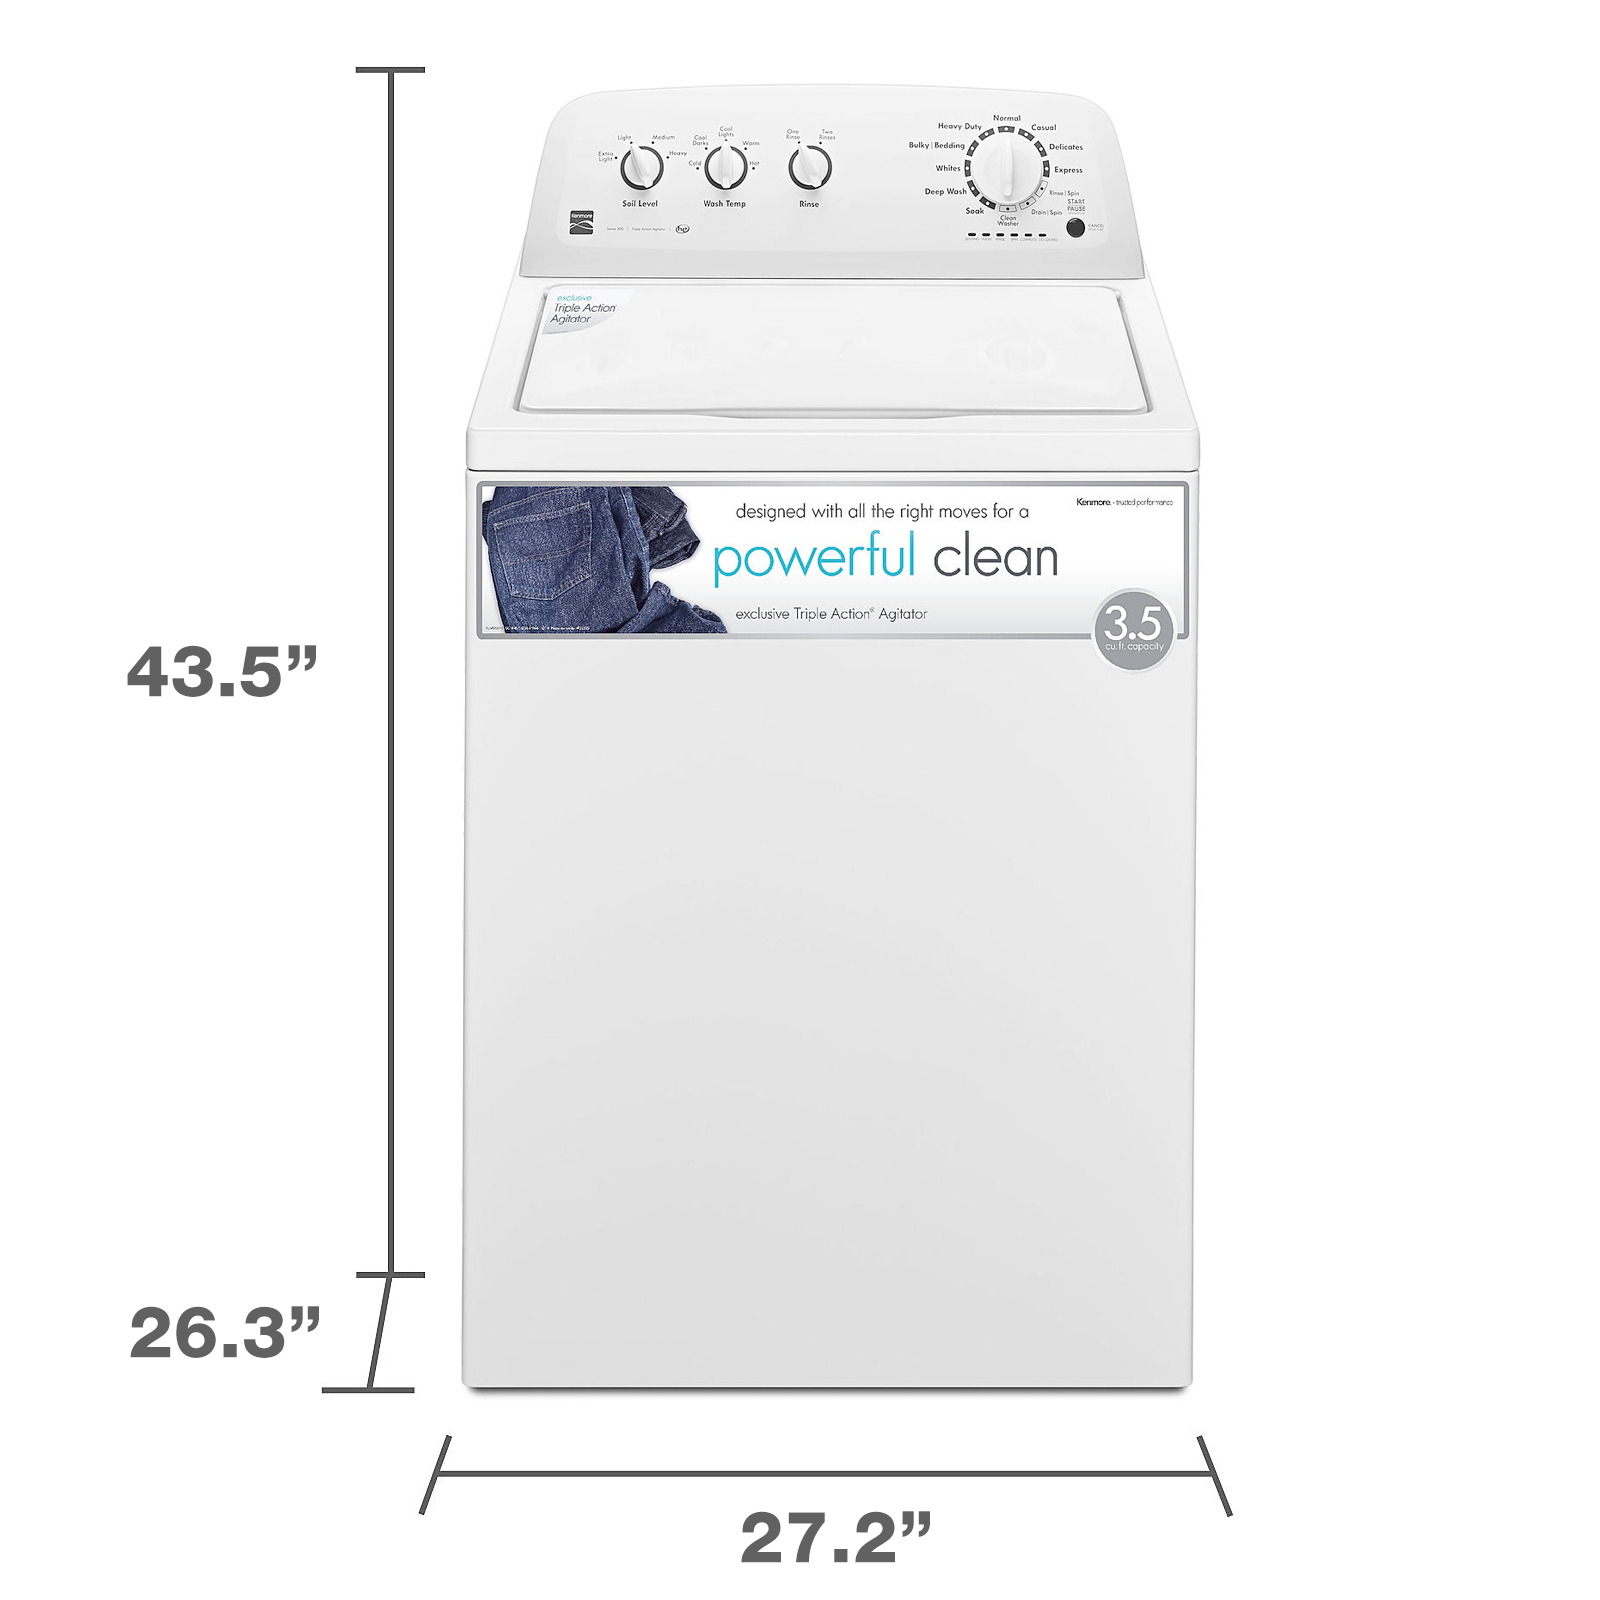 Kenmore 22332 3.5 cu. ft. Top Load Washer - White